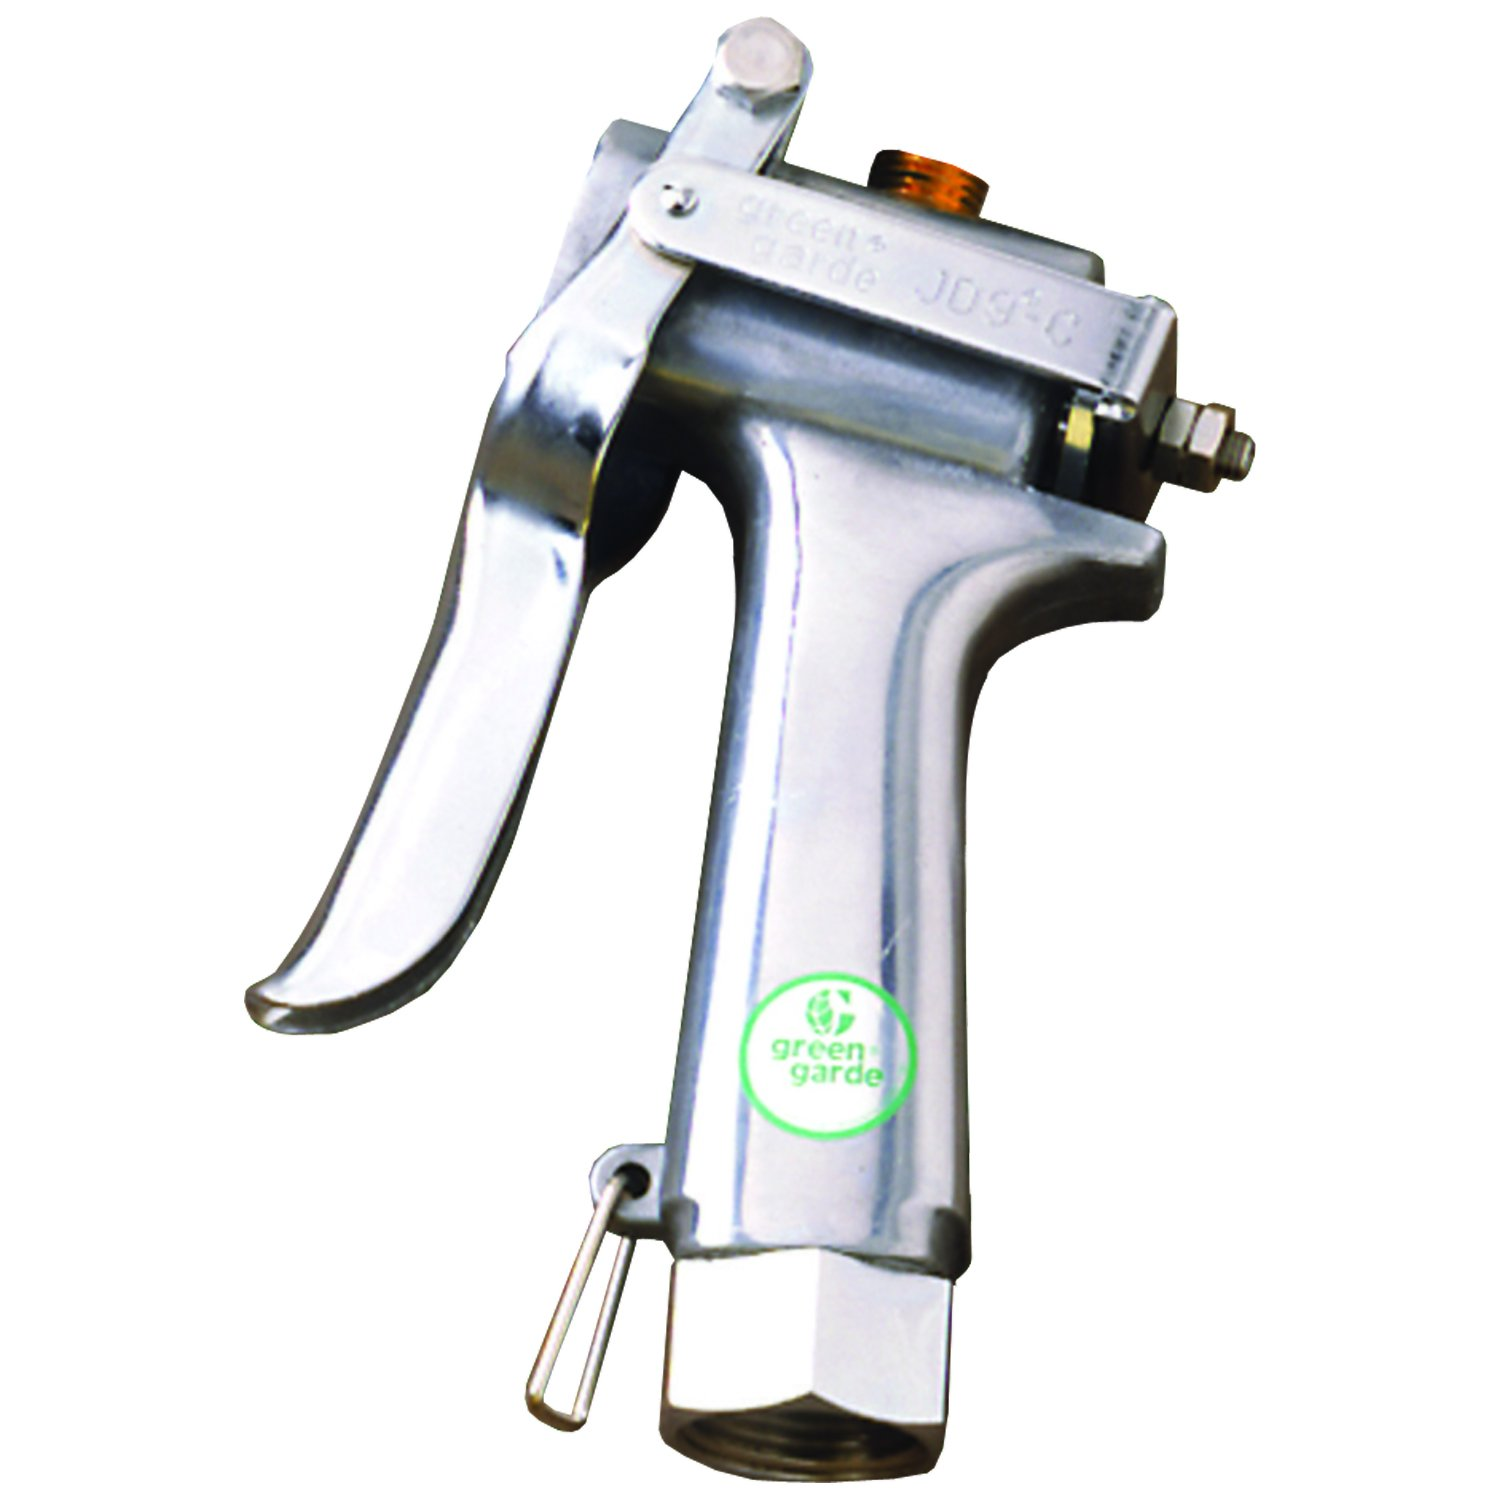 Hudson 38503 JD9-GTV Gun with JD9-CT Grip, Trigger and Valve for Use with 39919/39920 Root Feeders